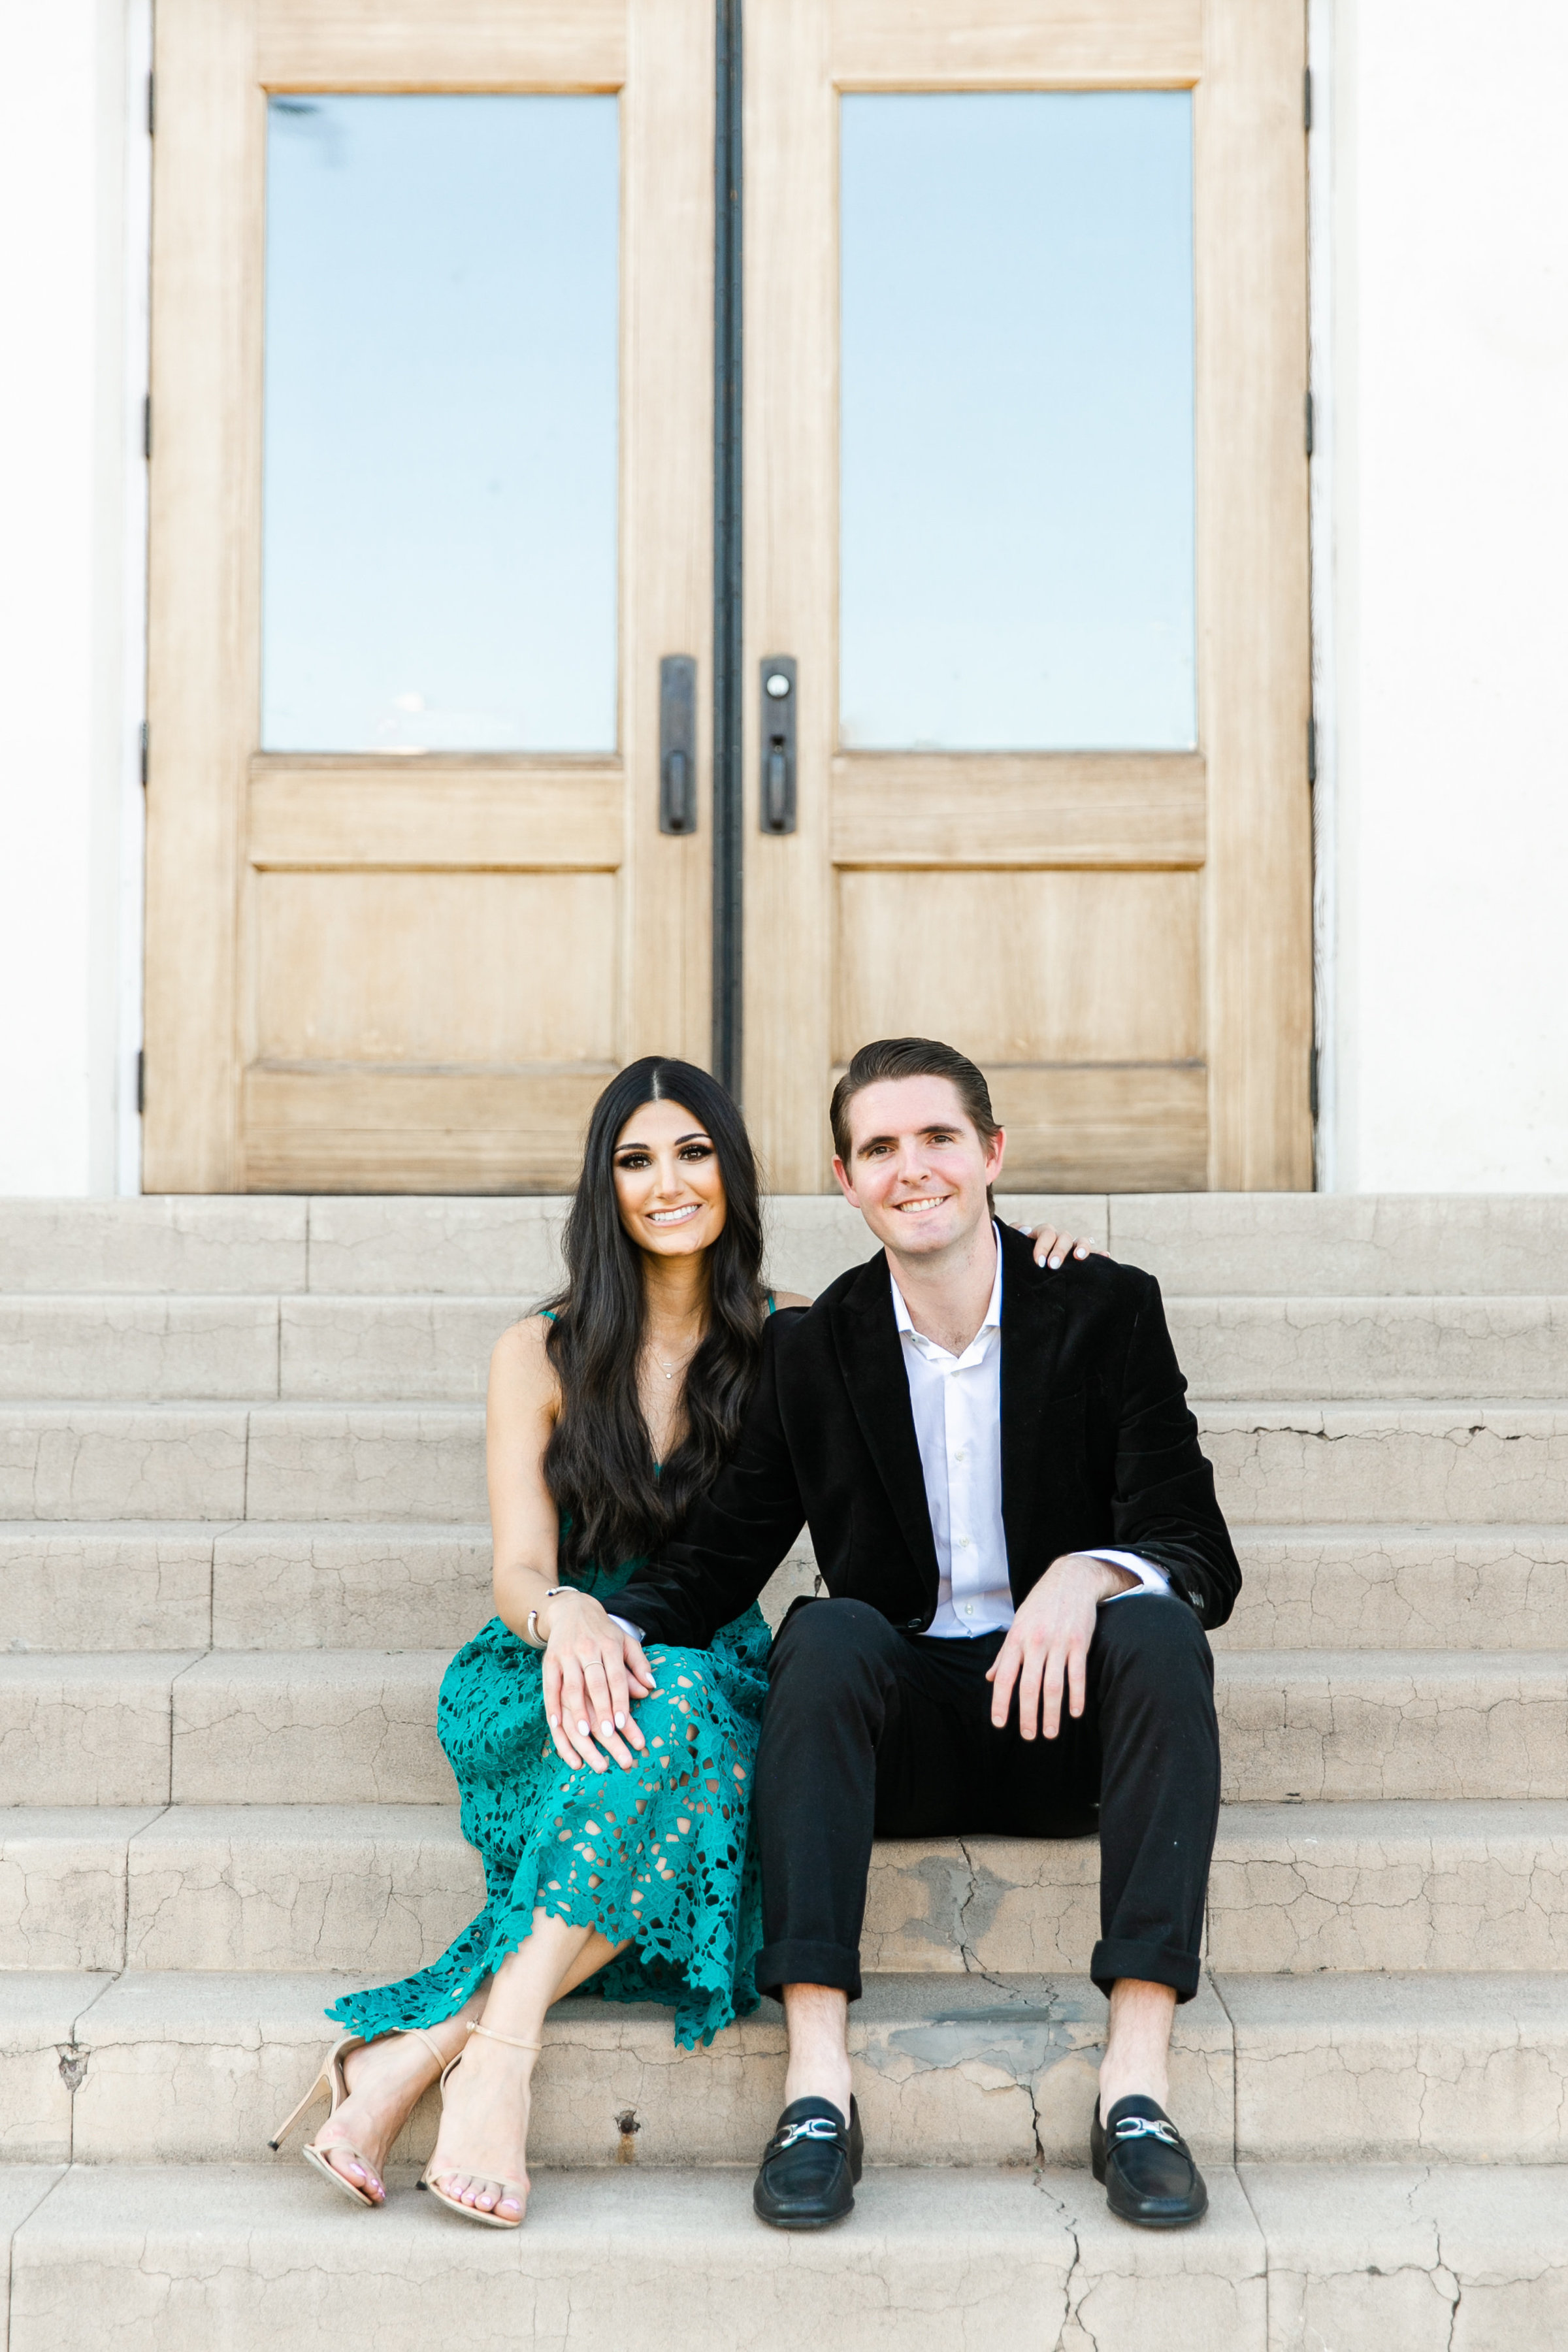 Karlie Colleen Photography - Arizona Engagement City Shoot - Kim & Tim-146